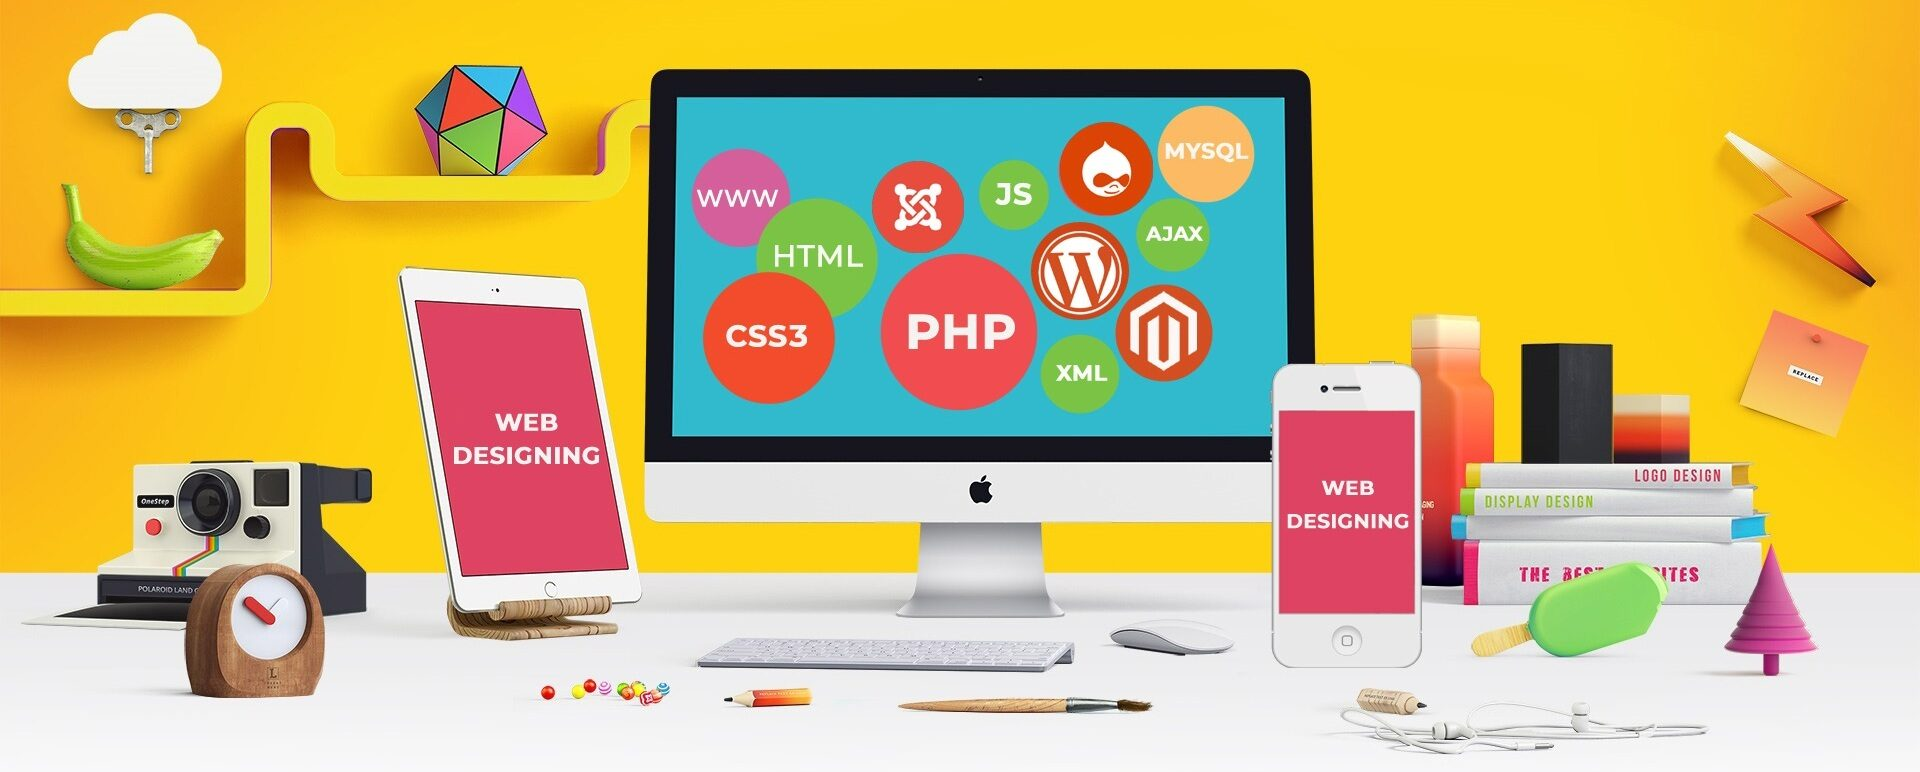 Business Sales Picking up? Upgrade to Professional Ecommerce Website Design